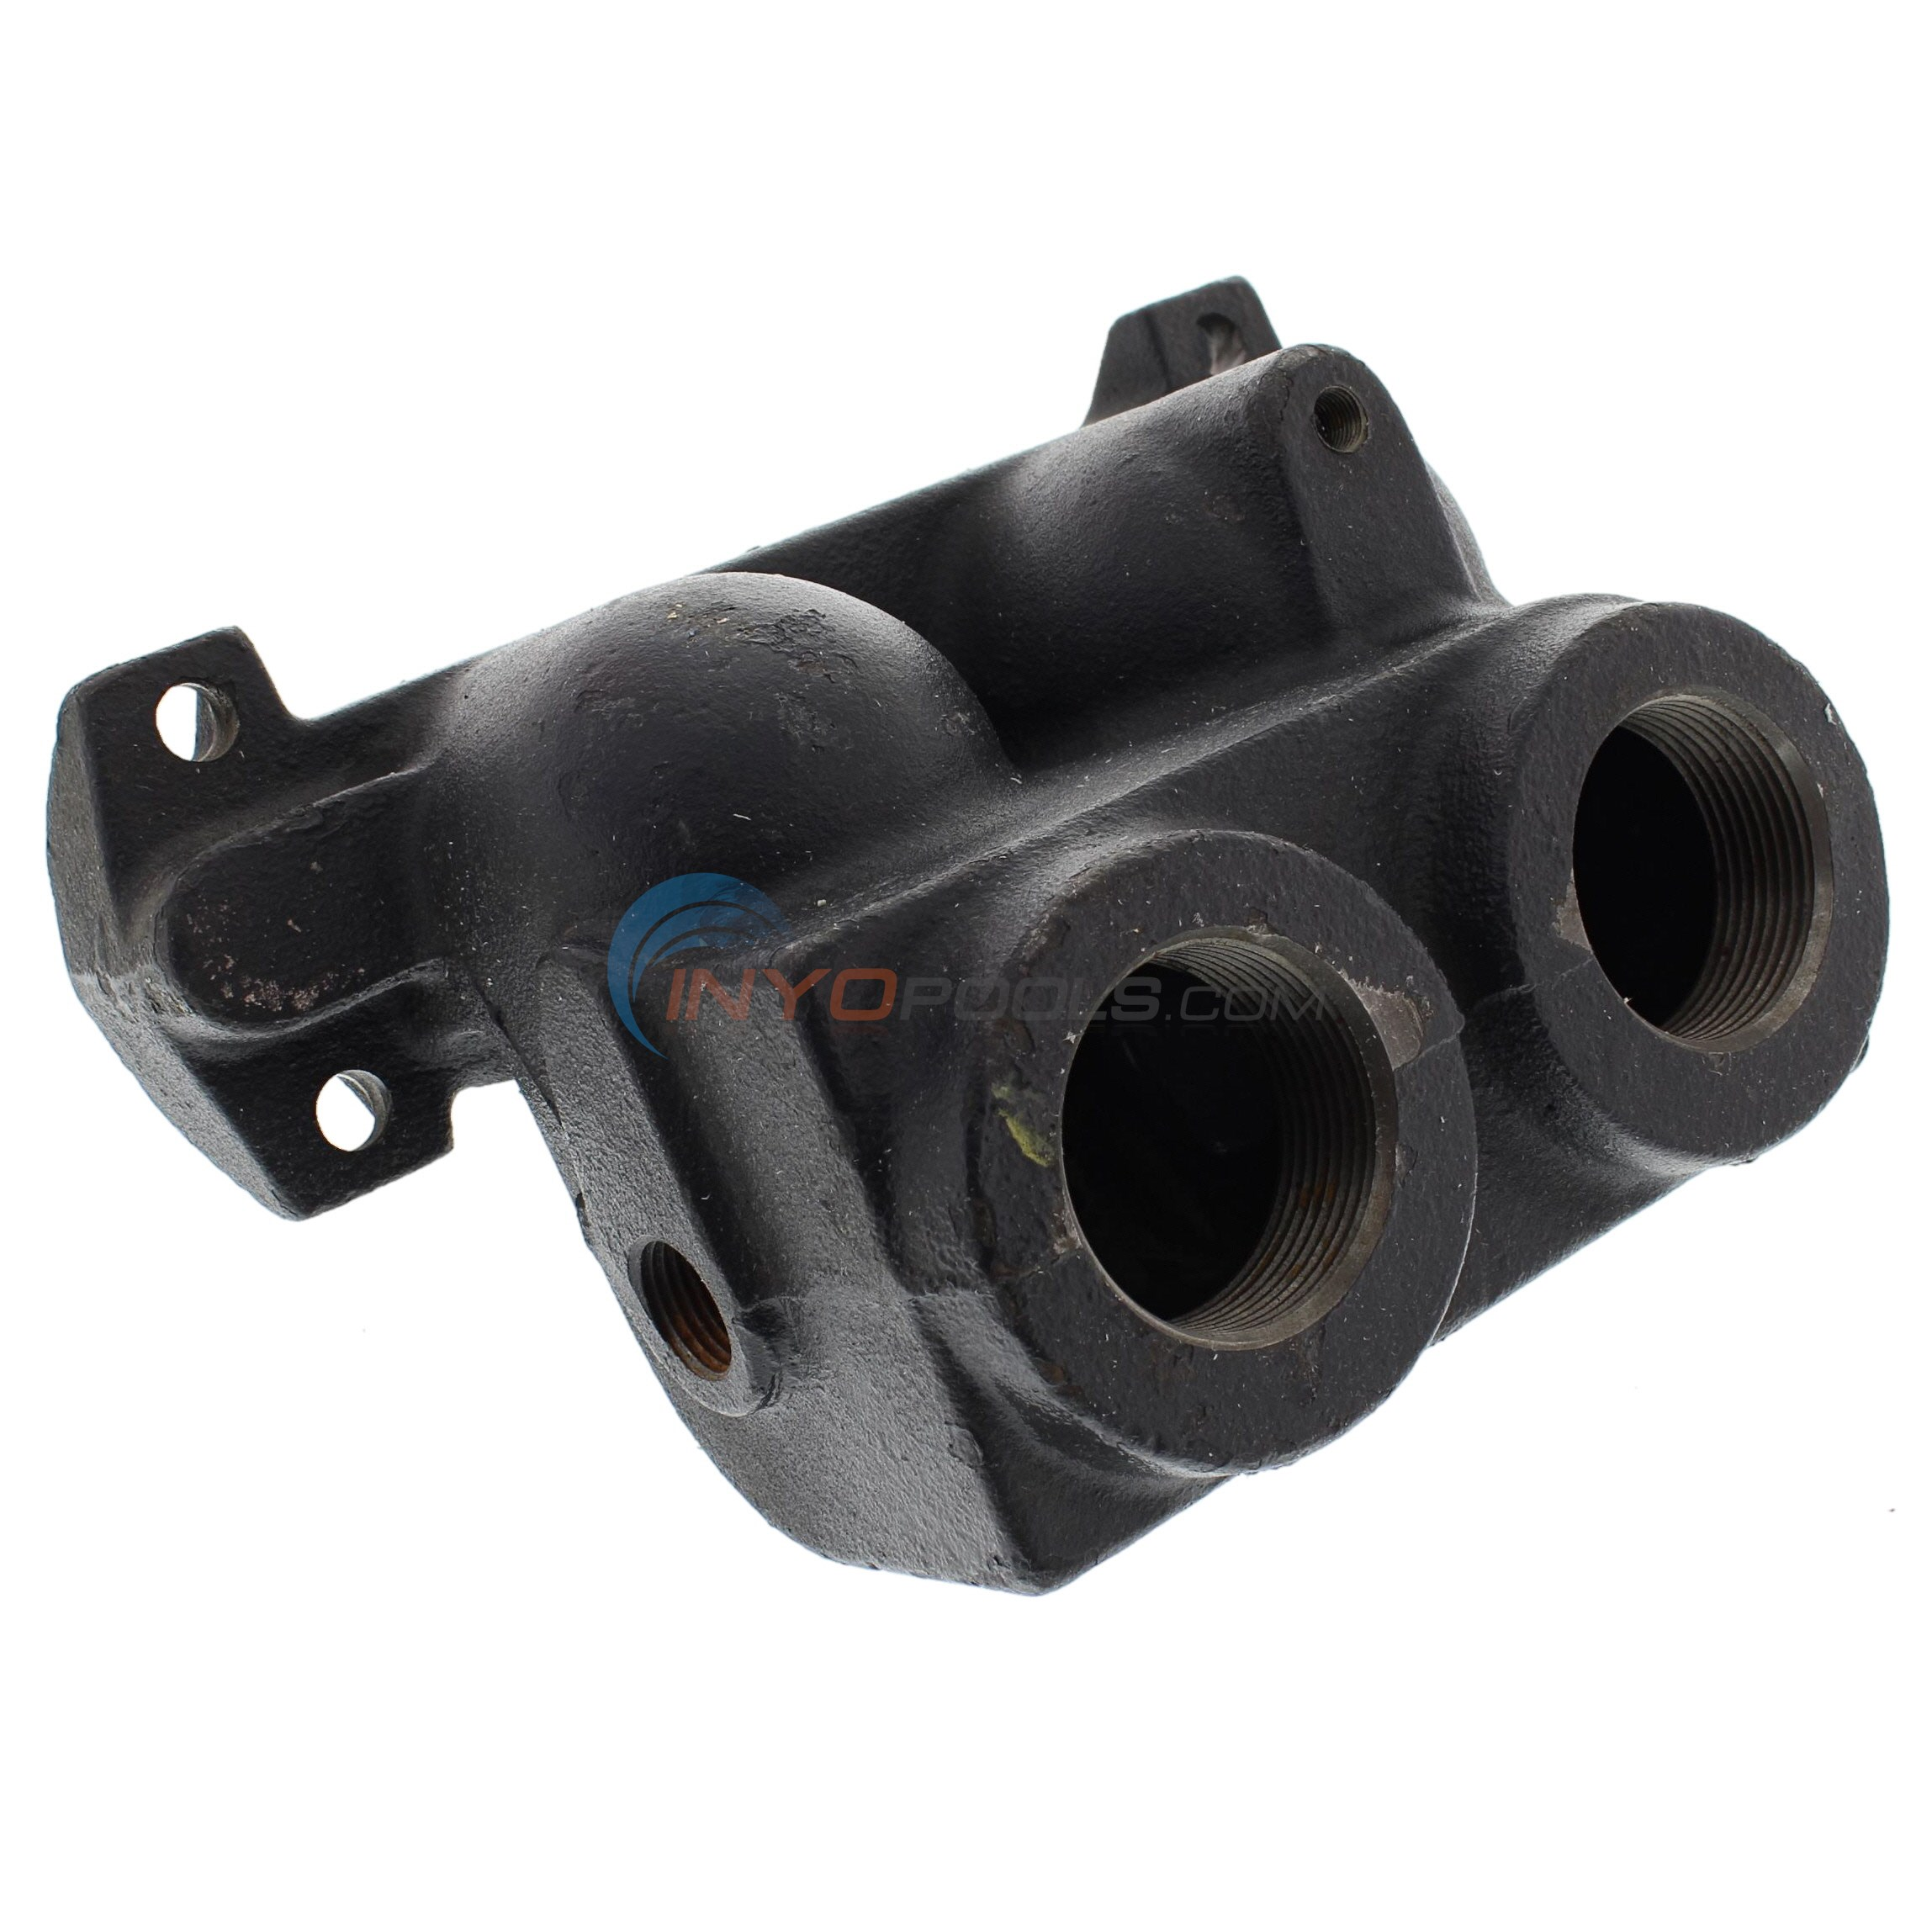 INLET OUTLET HEADER, CAST IRON, 105B